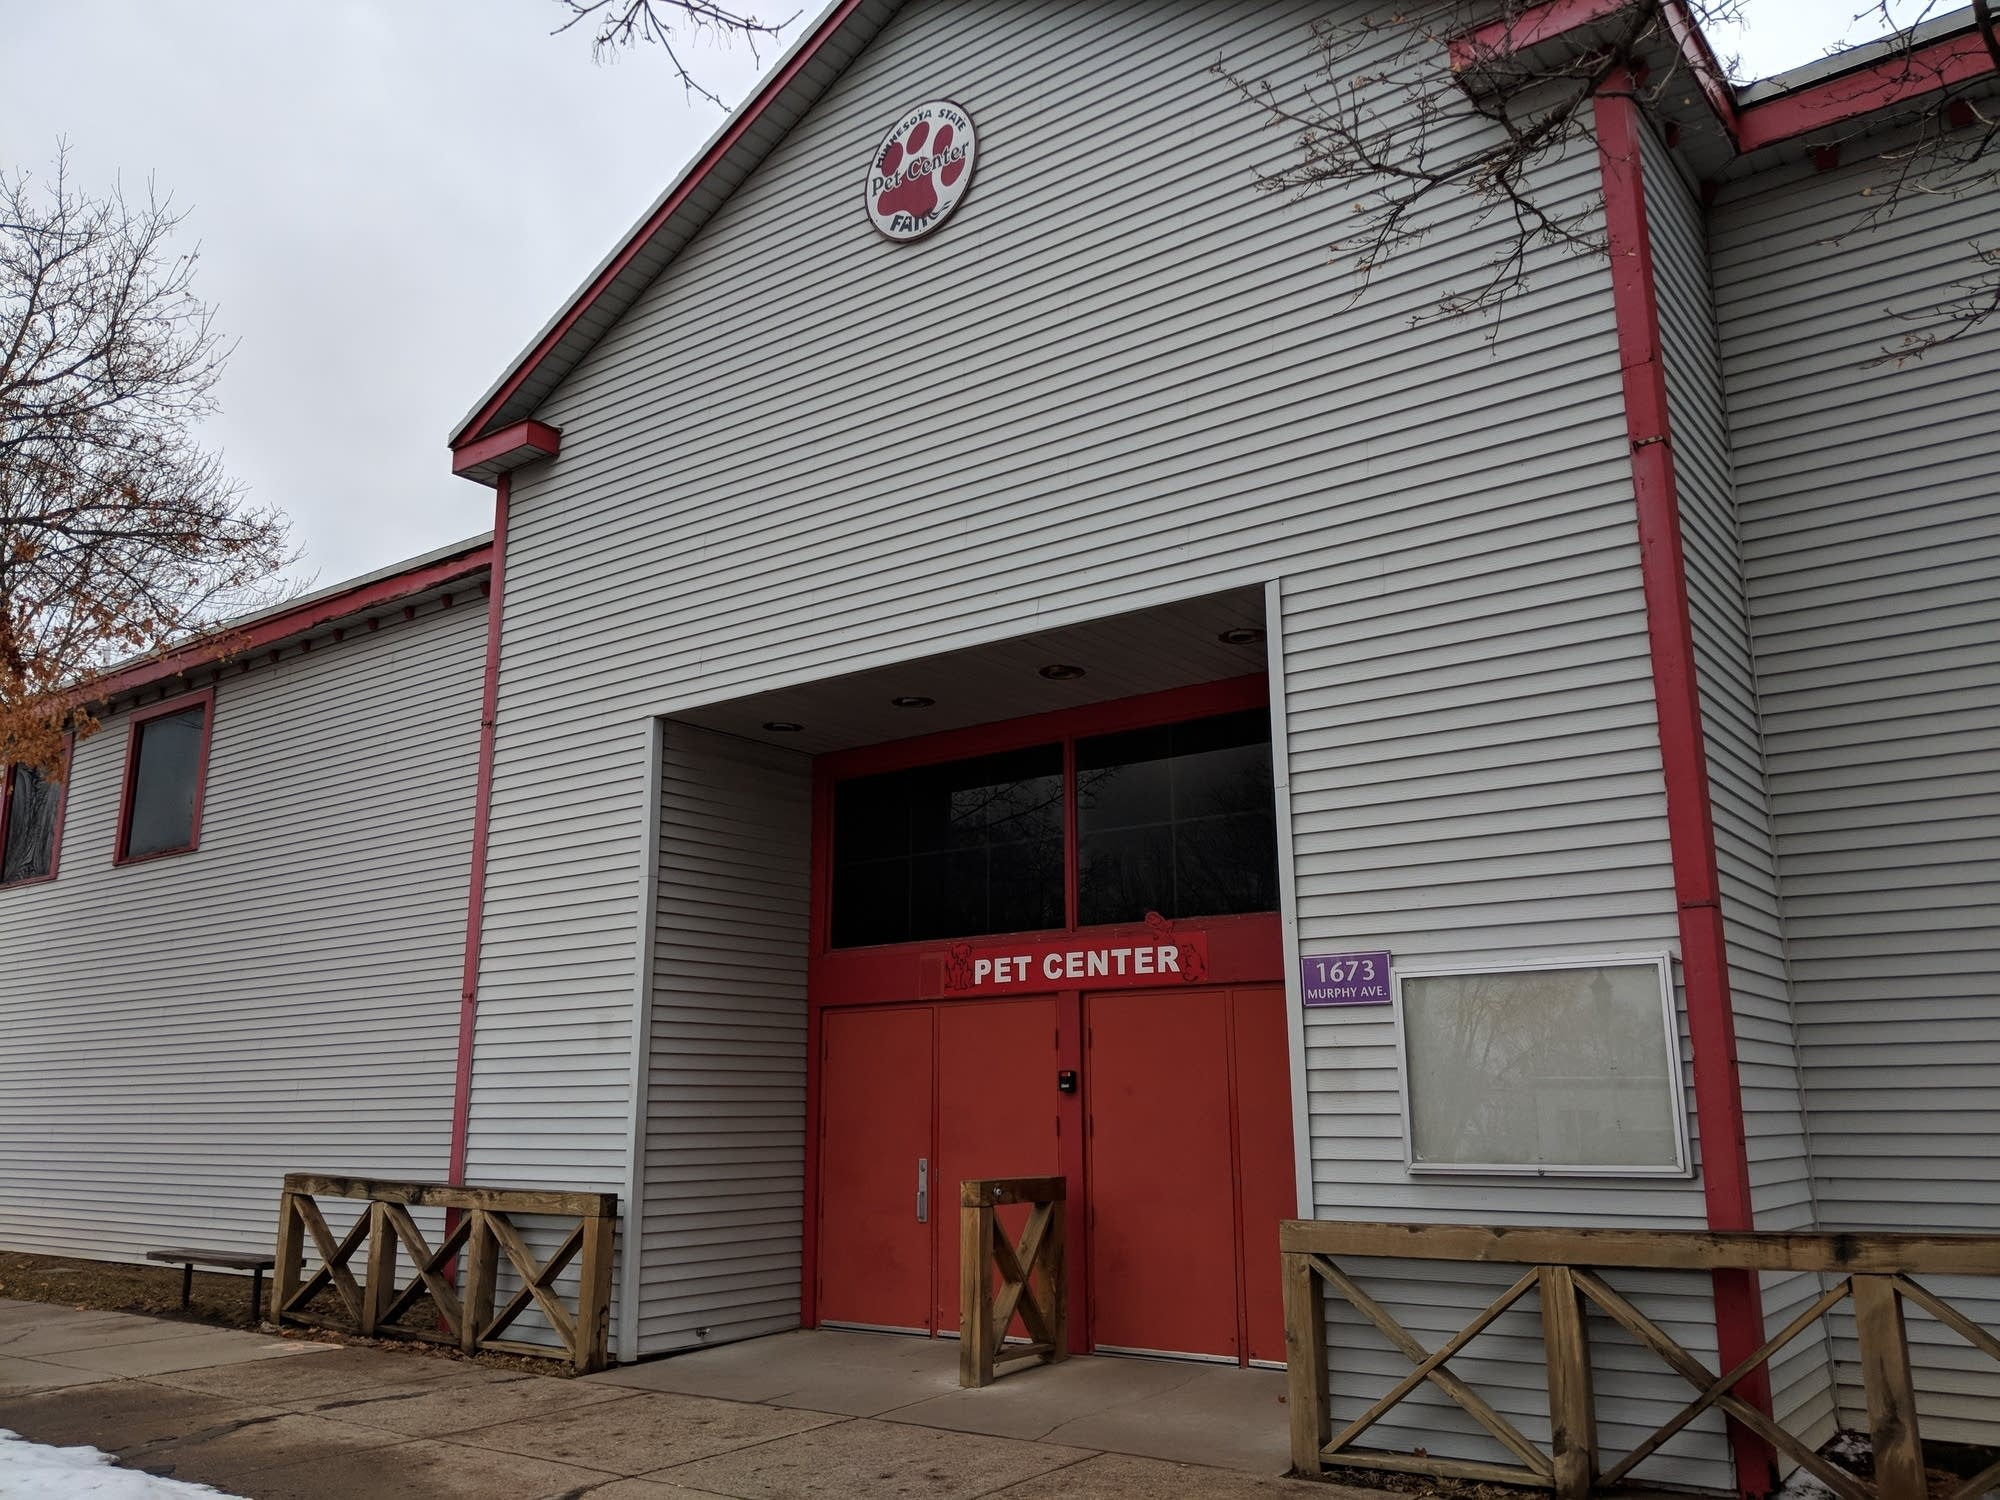 The Minnesota State Fair approved a new tenant for the fair's Pet Center.